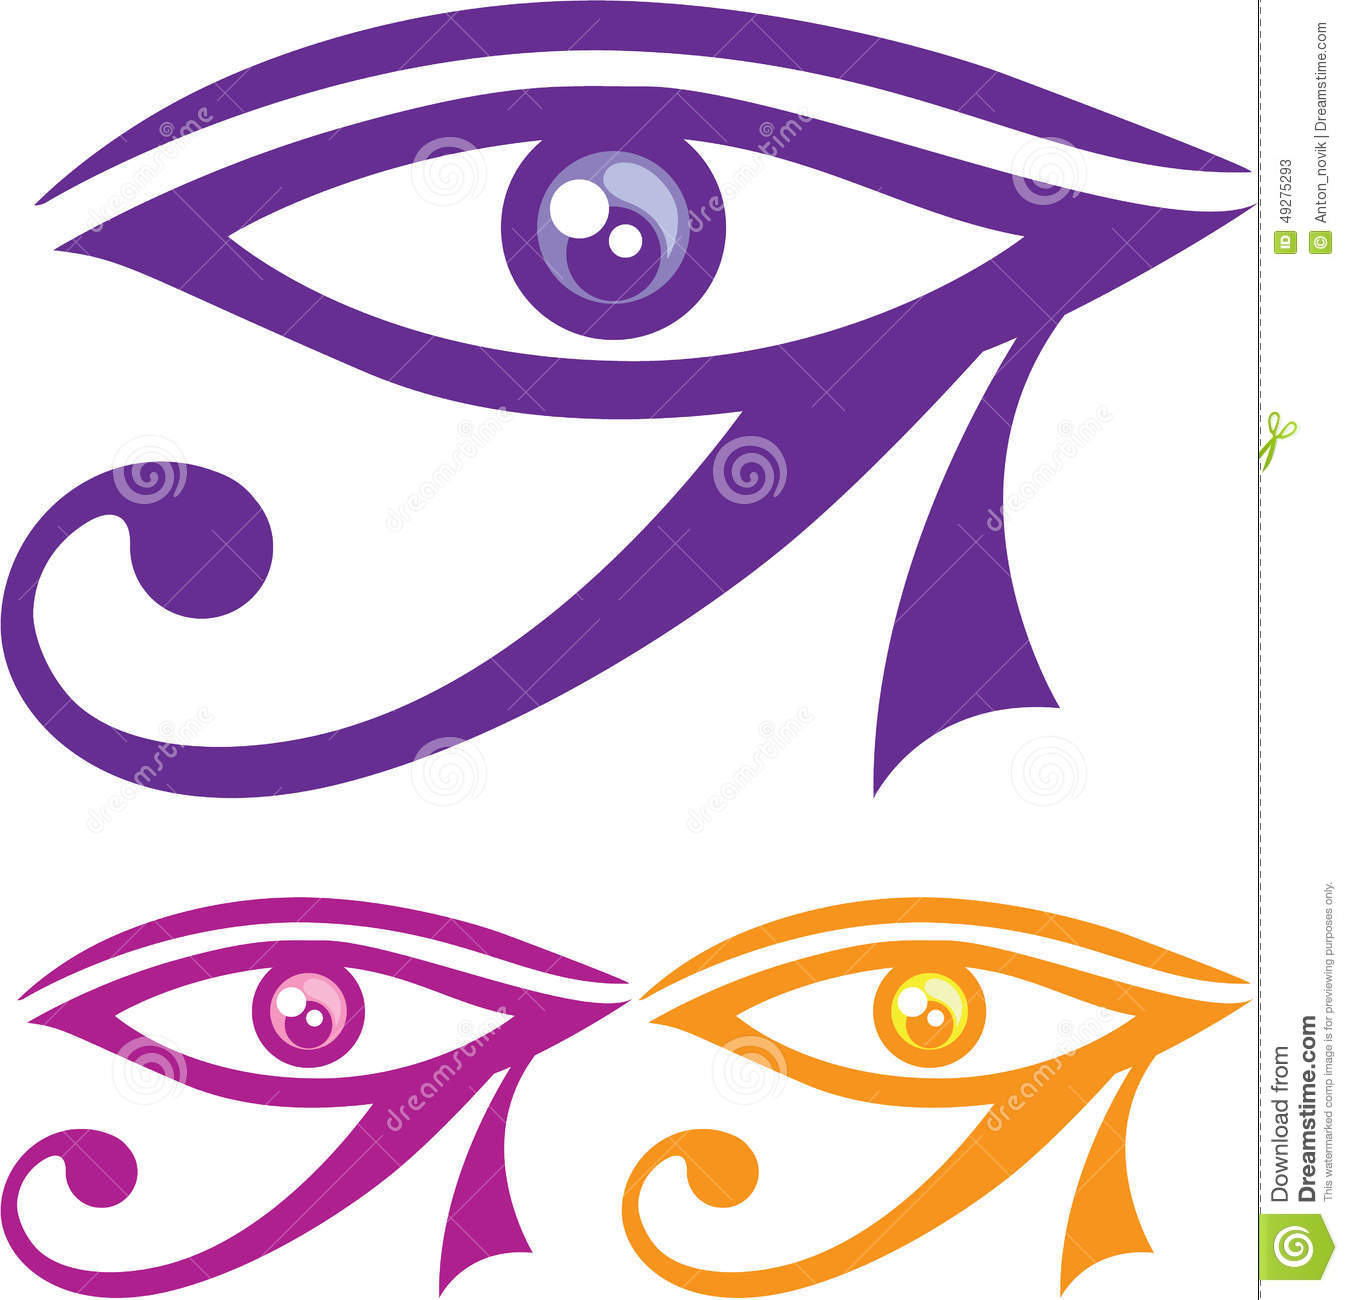 how to draw the eye of horus